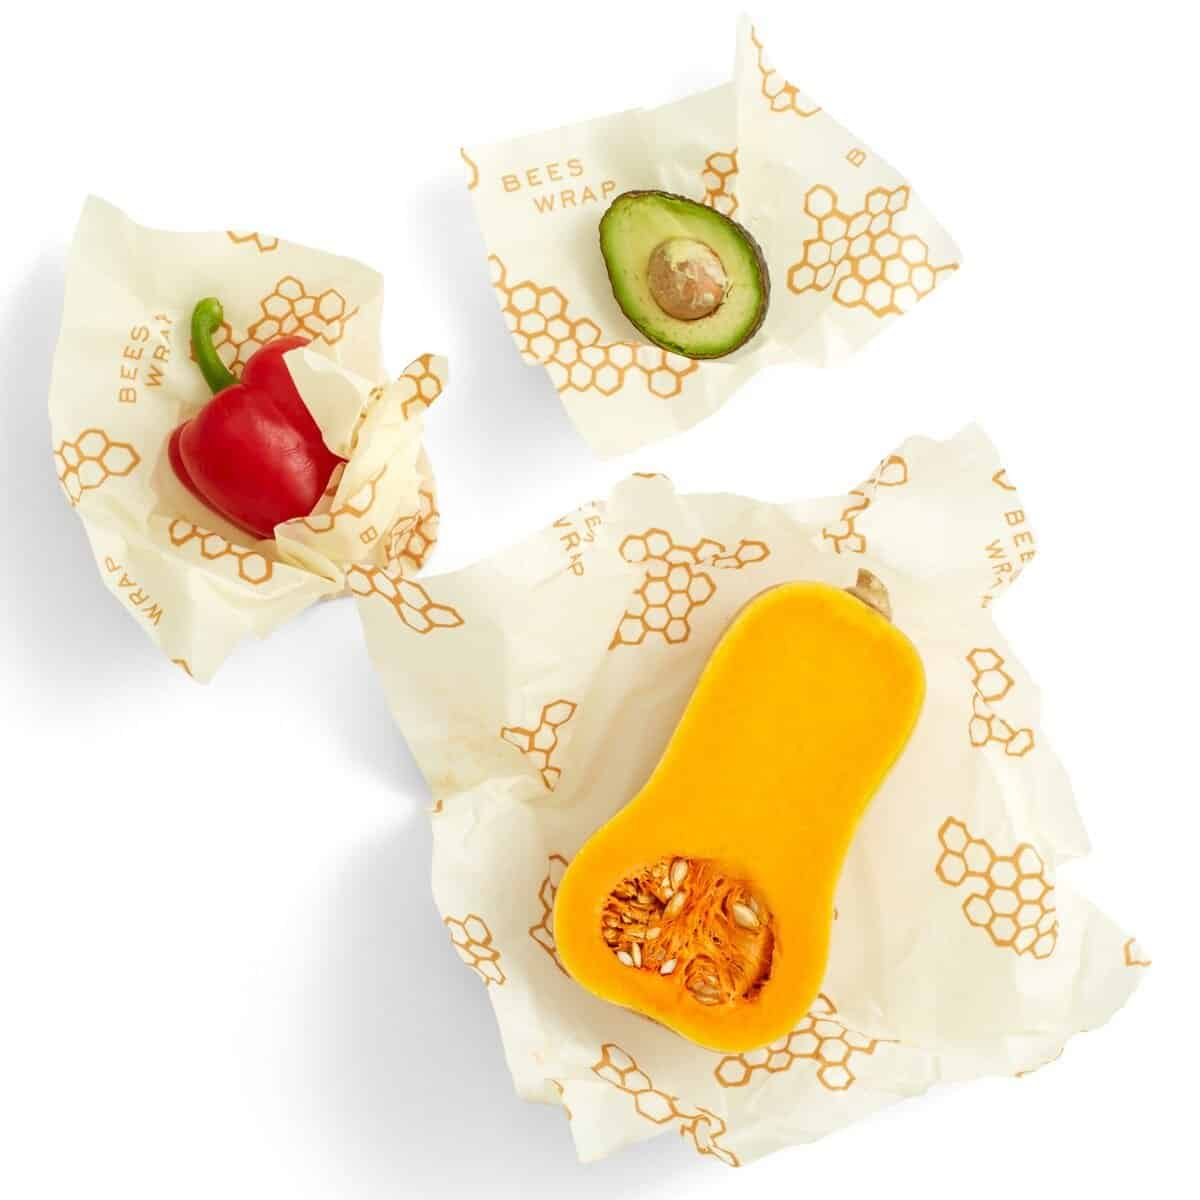 bees wrap with fruit